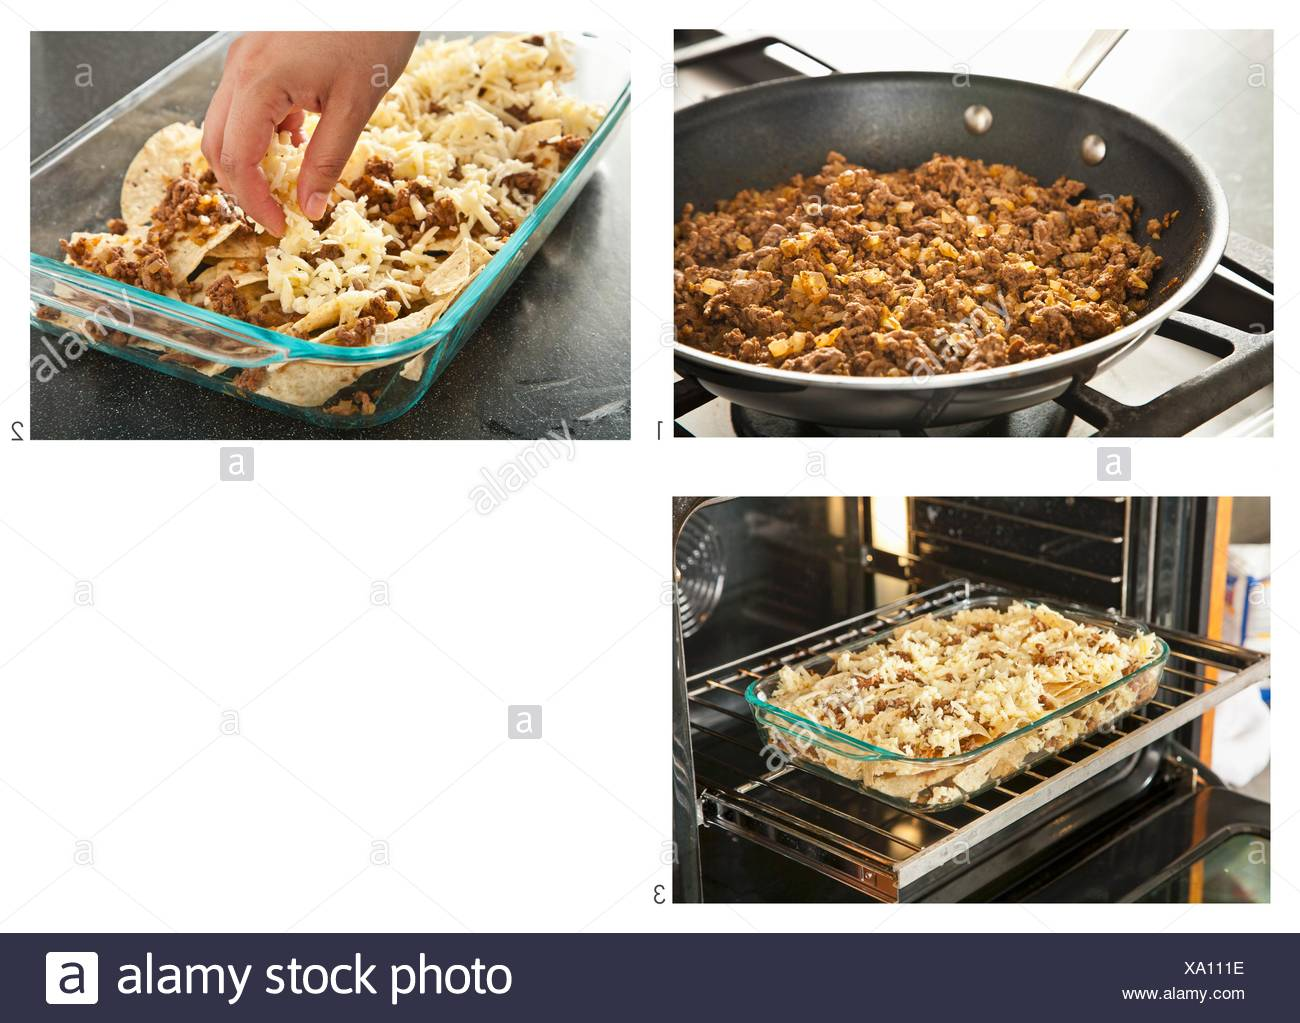 Making Beef Nachos - Stock Image